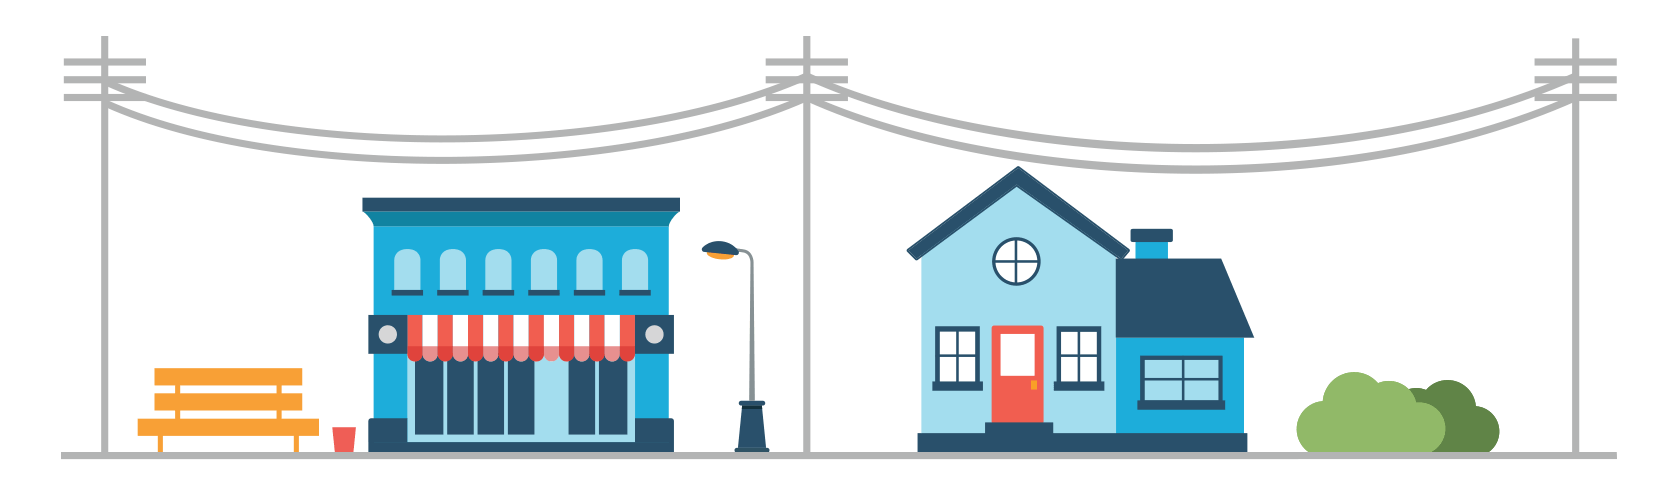 Utiliz home what is. Electricity clipart power house